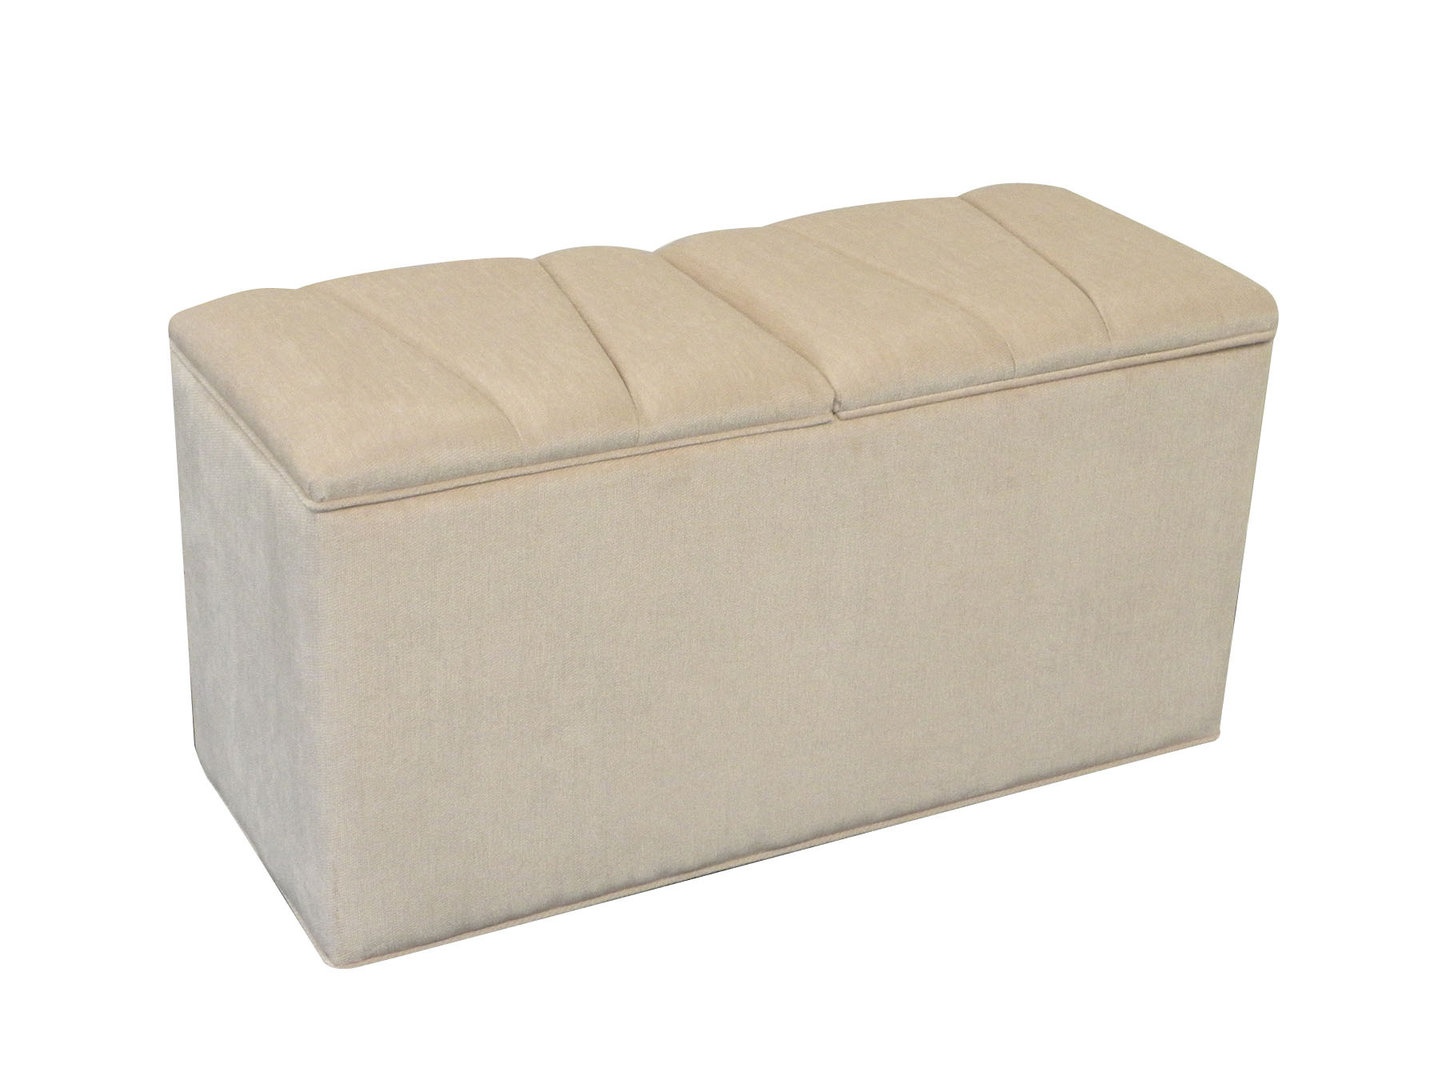 Ottomans Deacon Beige Upholstered Blanket Box: British Made Ottomans, Footstools